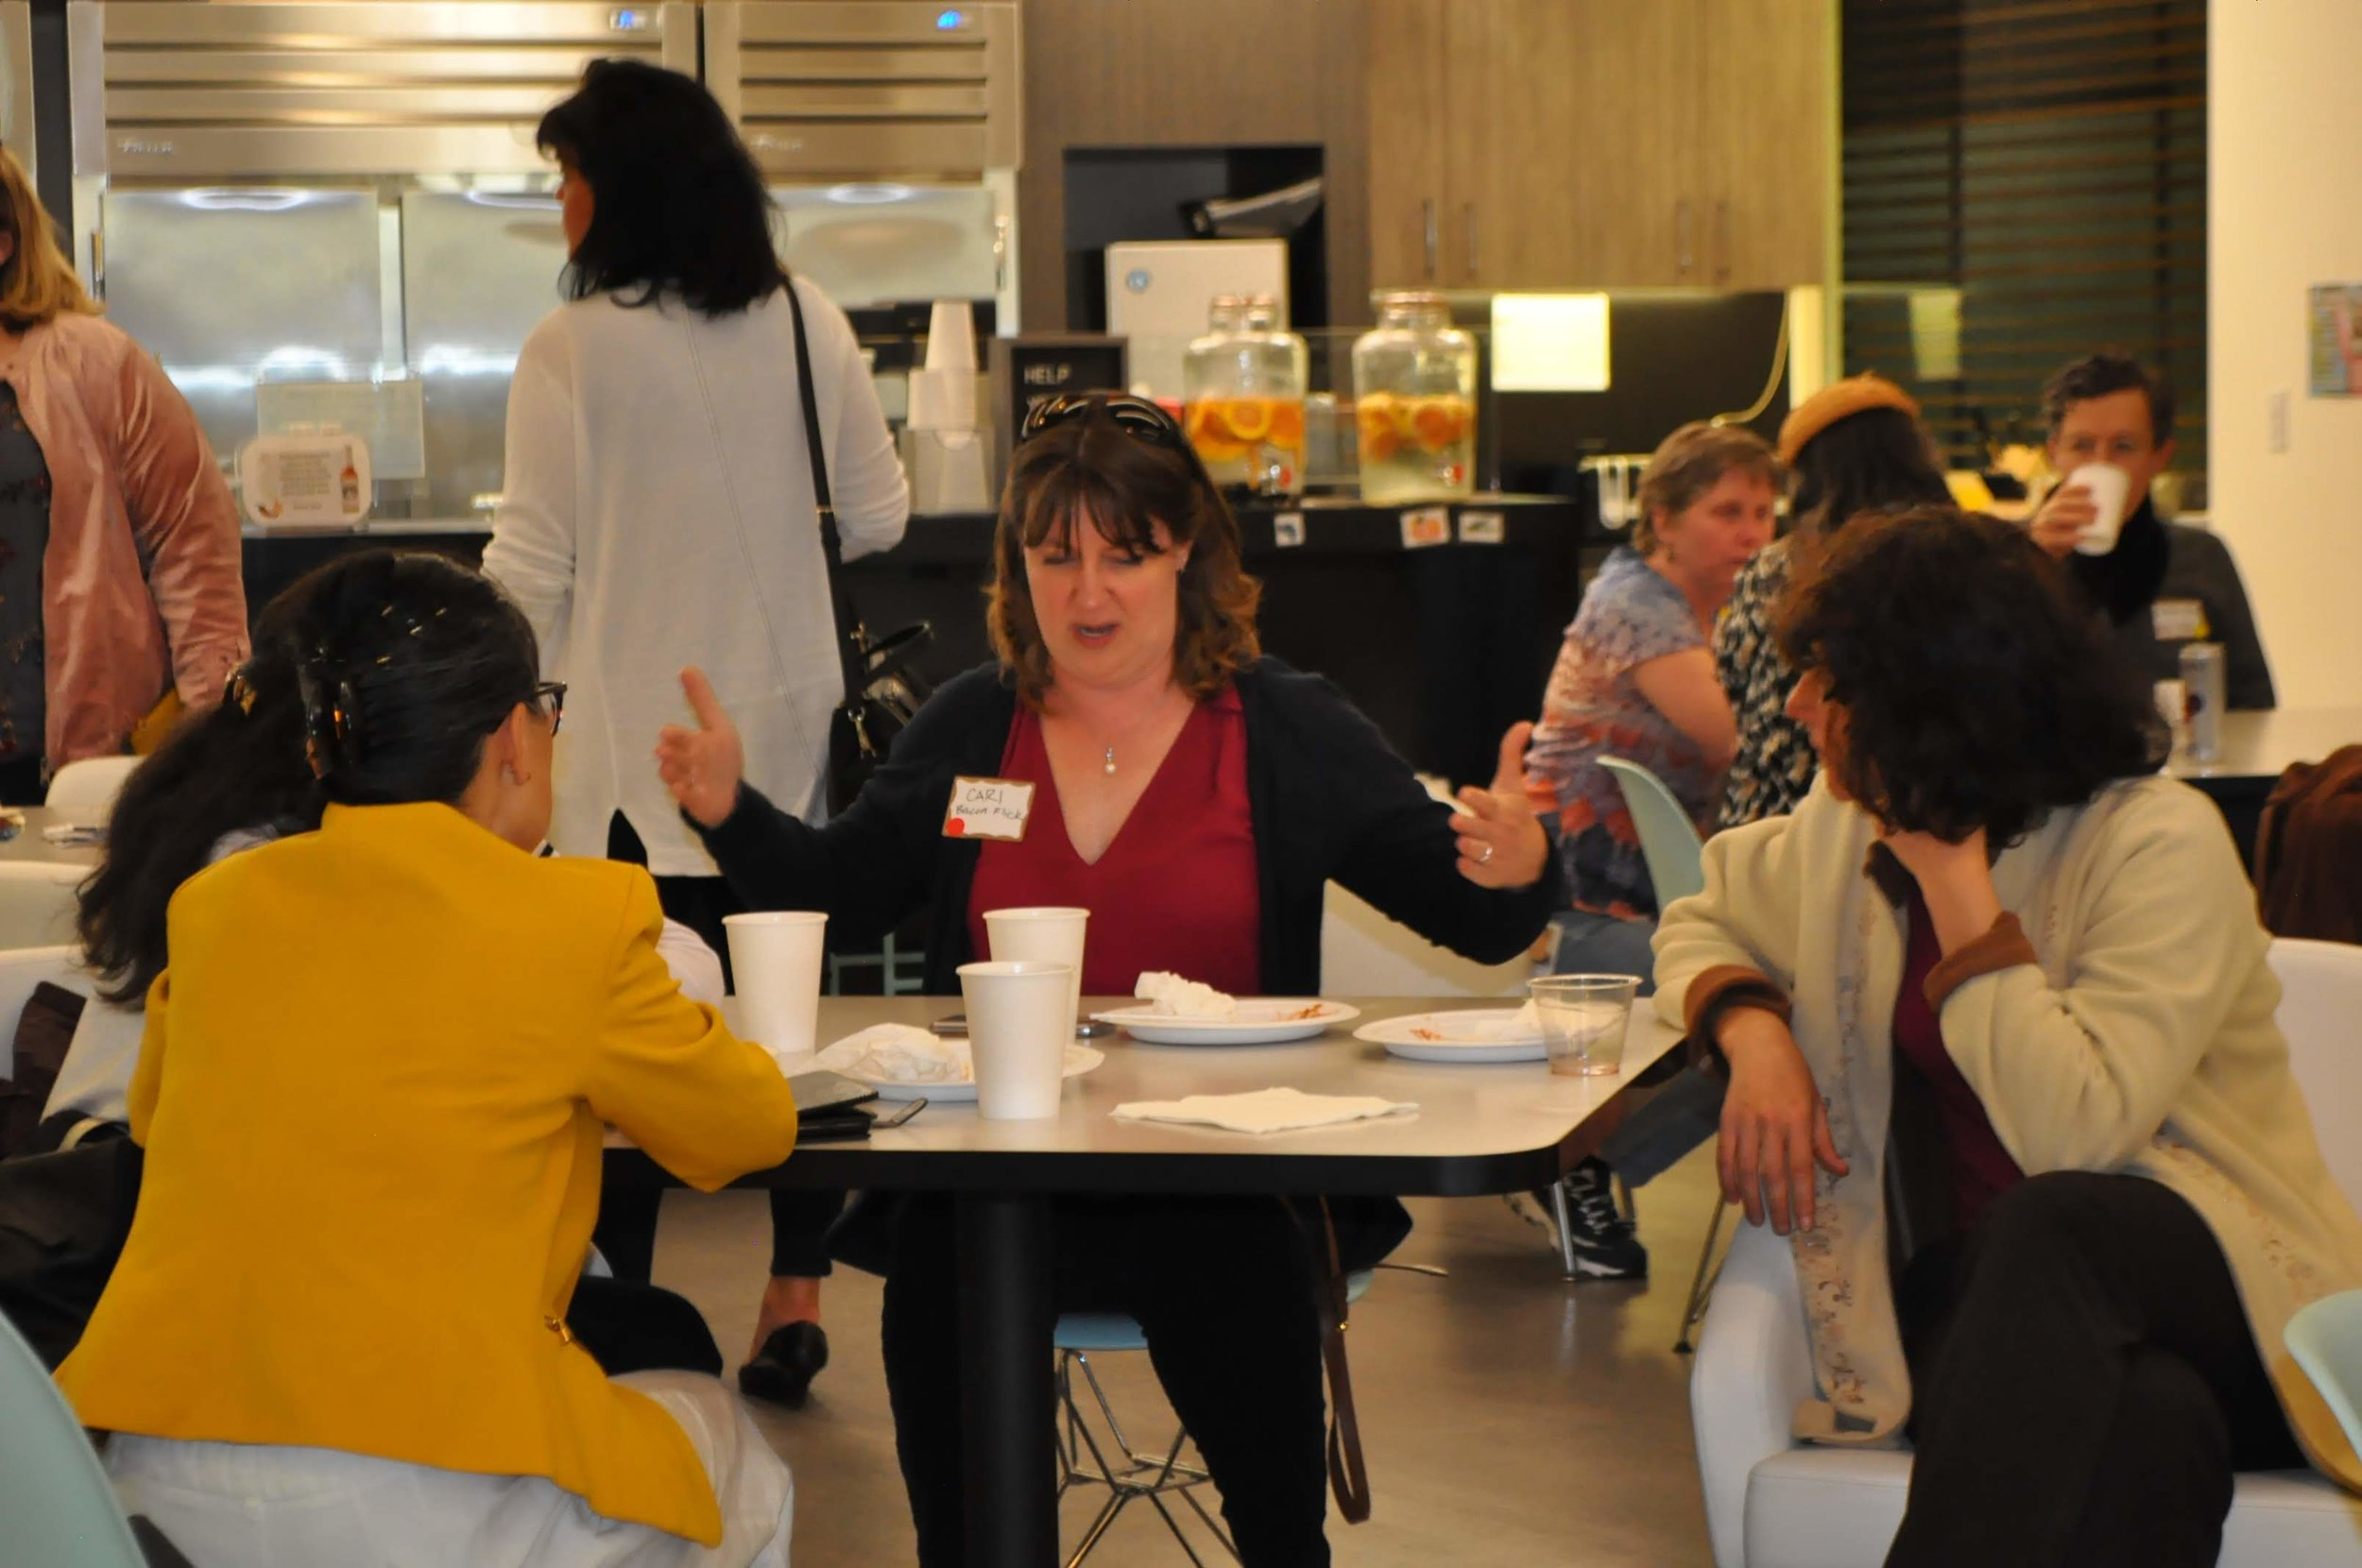 PDXWIT Experienced Women in Tech @ Corvel, 4/30/19 - Attendees mingle